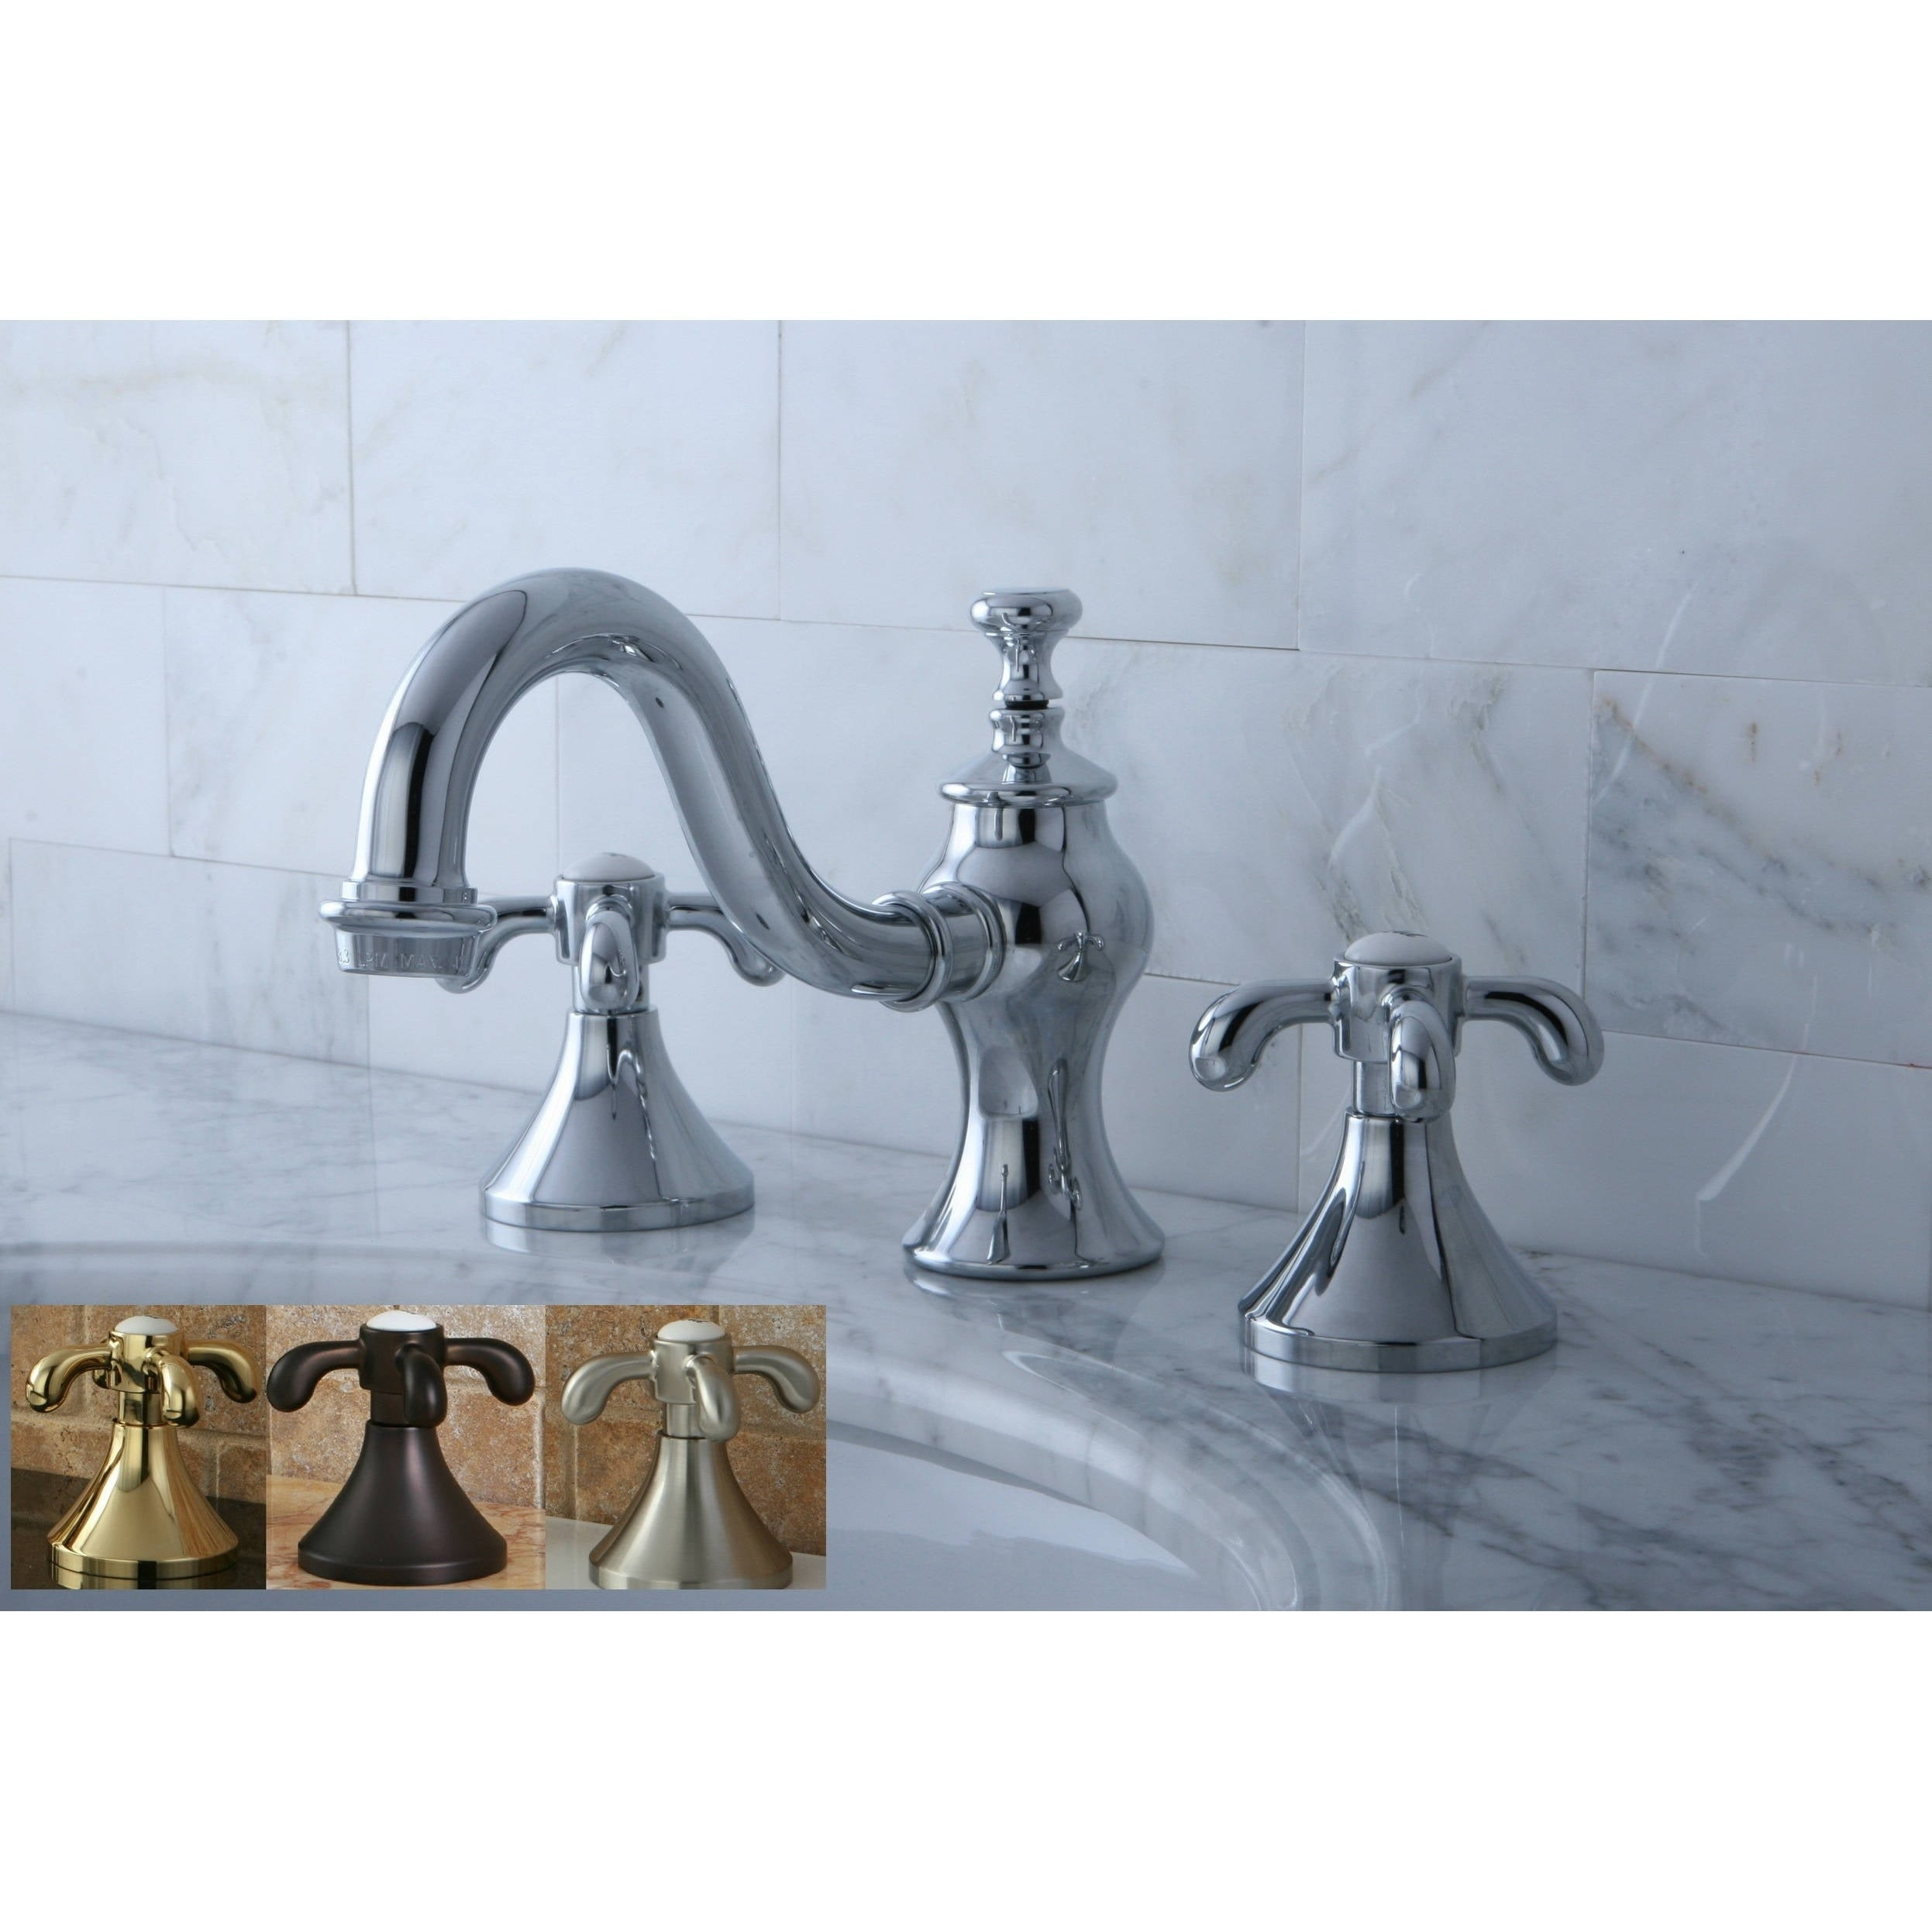 Three holes Bathroom Faucets For Less | Overstock.com